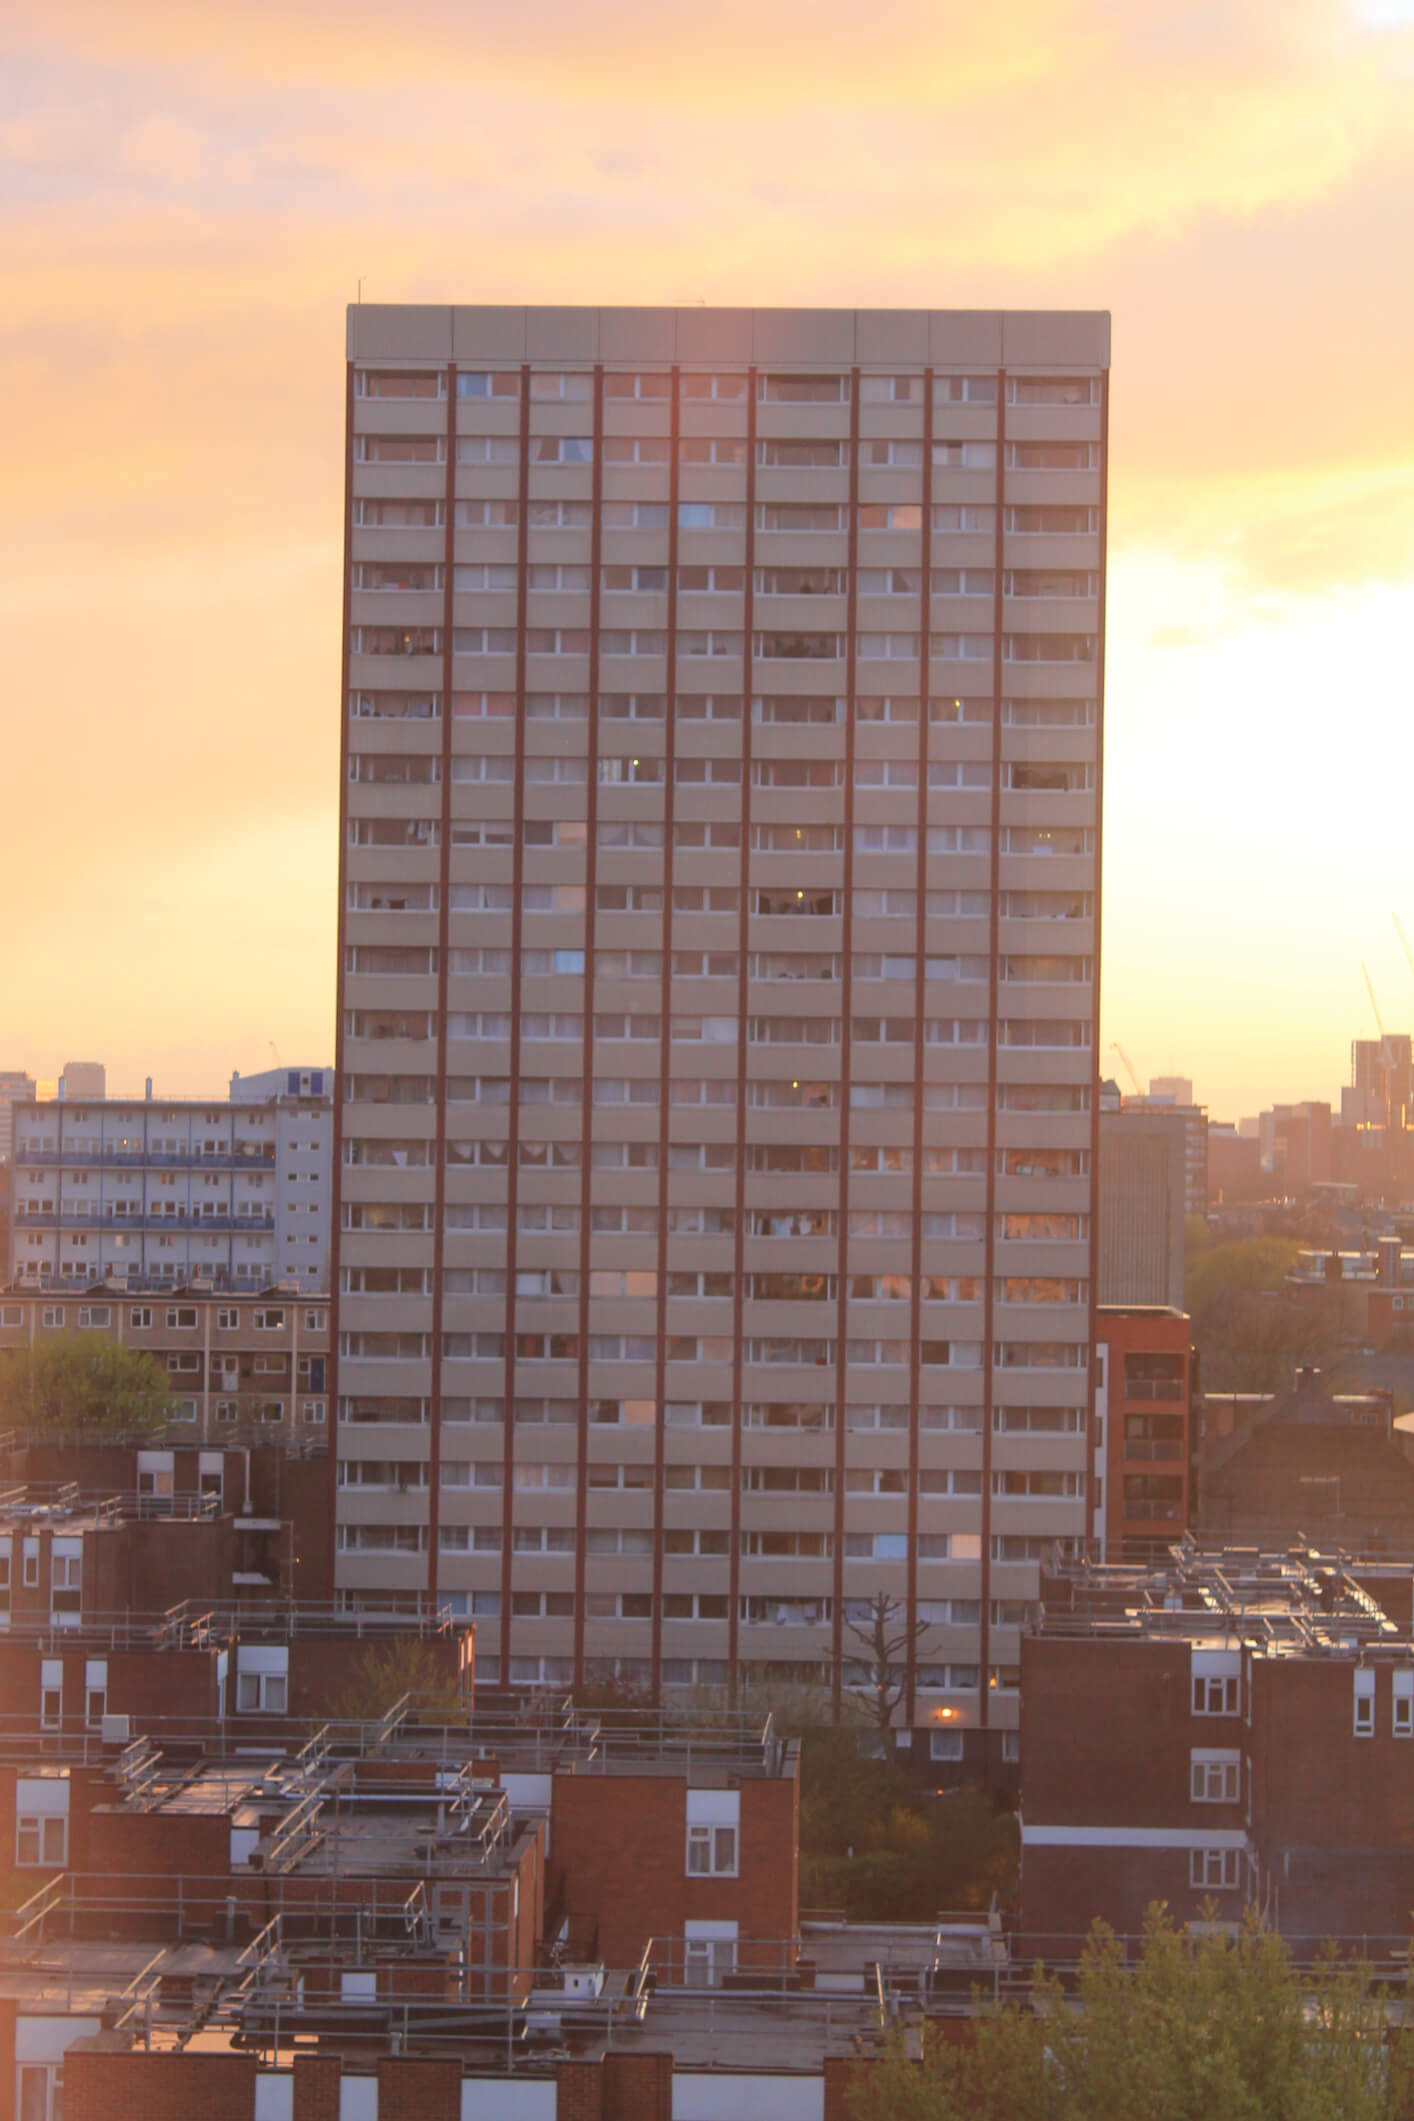 A tower block in Bethnal Green over looking the City, the Shard and other archiectural landmarks.